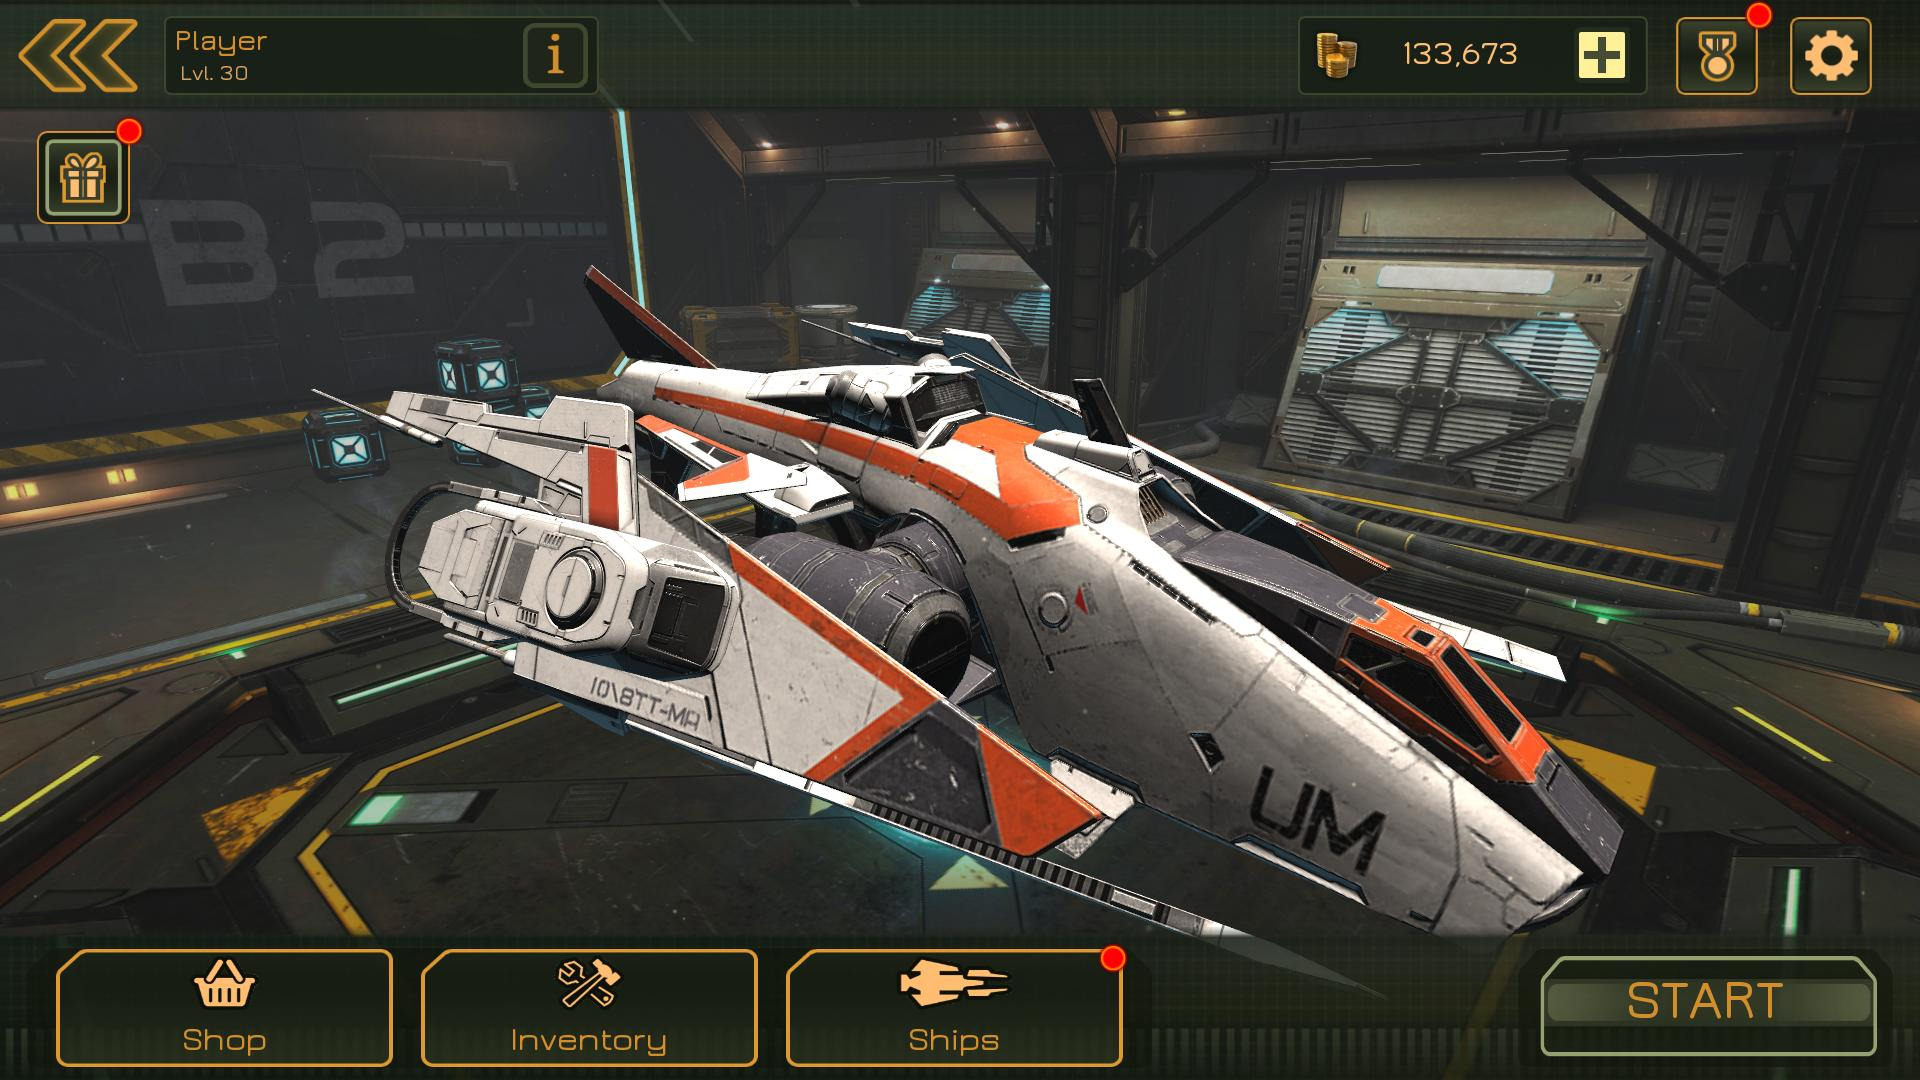 Subdivision Infinity 3D Space Shooter 1.0.7162 Screenshot 6